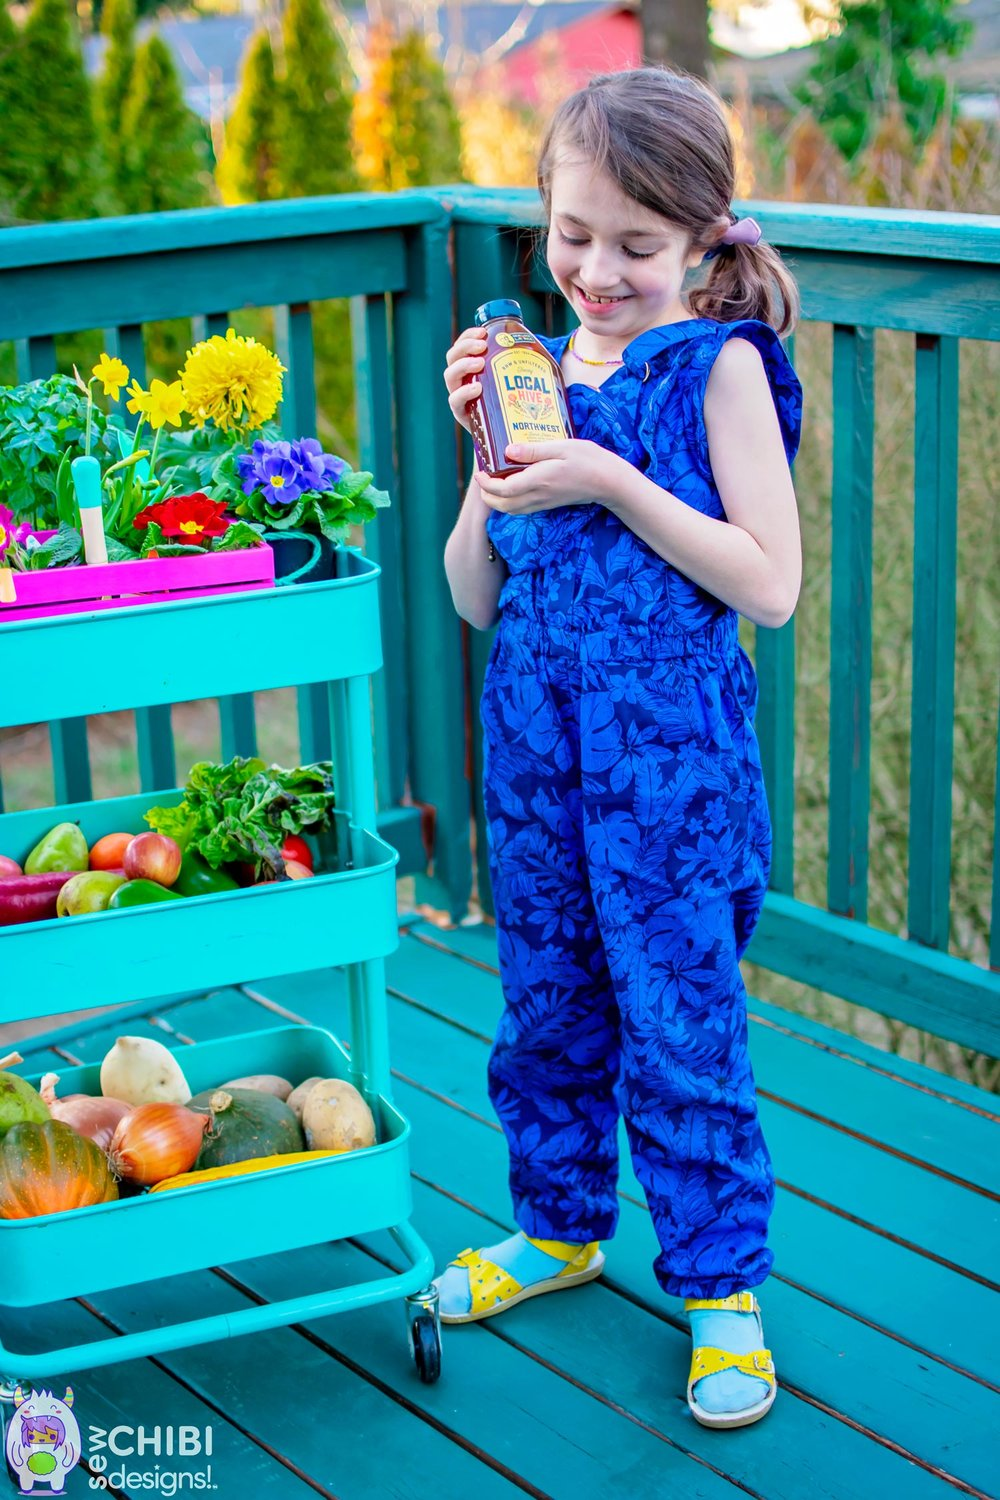 the Seed Romper